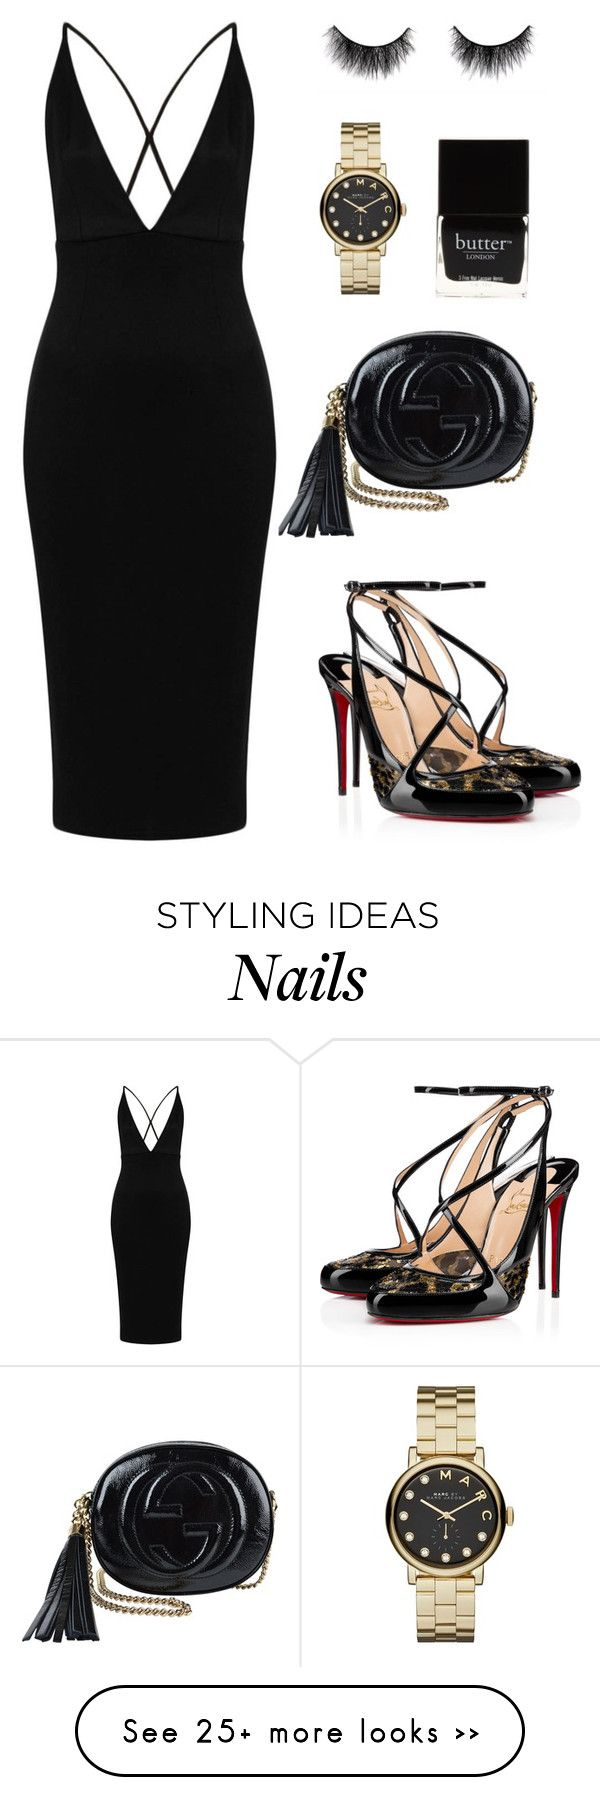 """""""Flashlight!"""" by zeineb-ayachi on Polyvore featuring Gucci, Oh My Love, Christian Louboutin, Butter London and Marc by Marc Jacobs"""